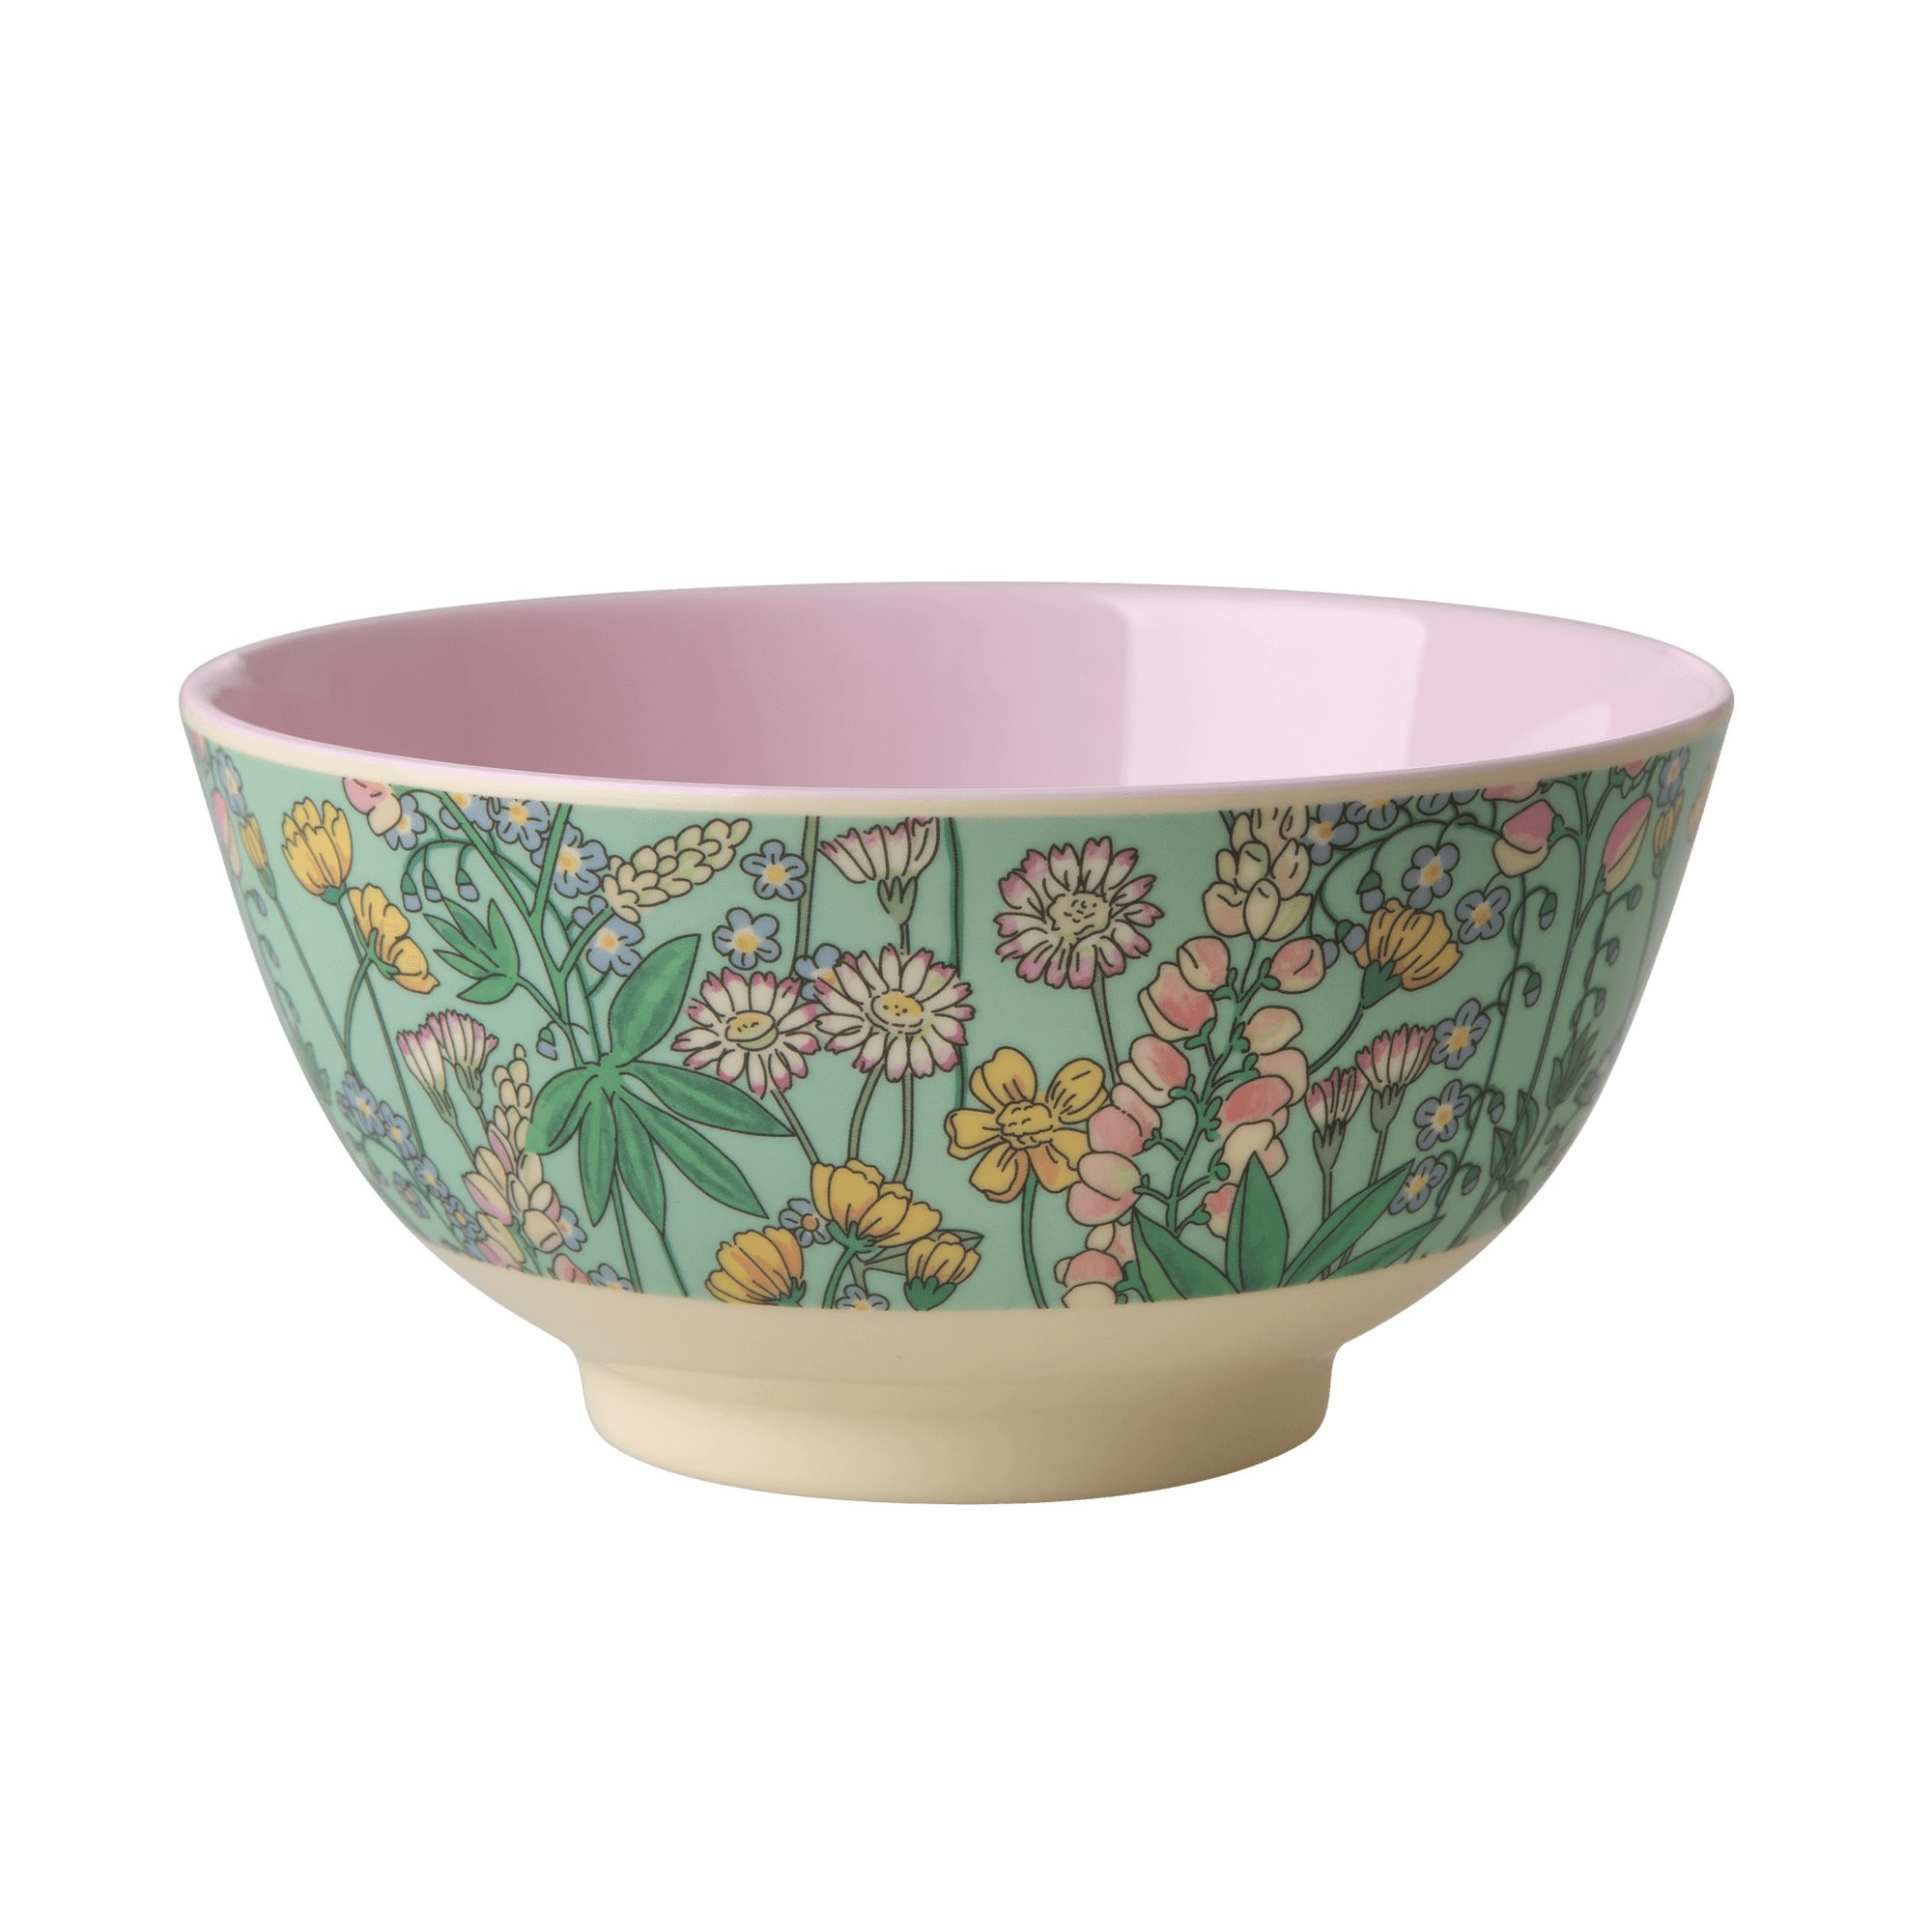 Medium Melamine Bowl - Lupin Print - rice